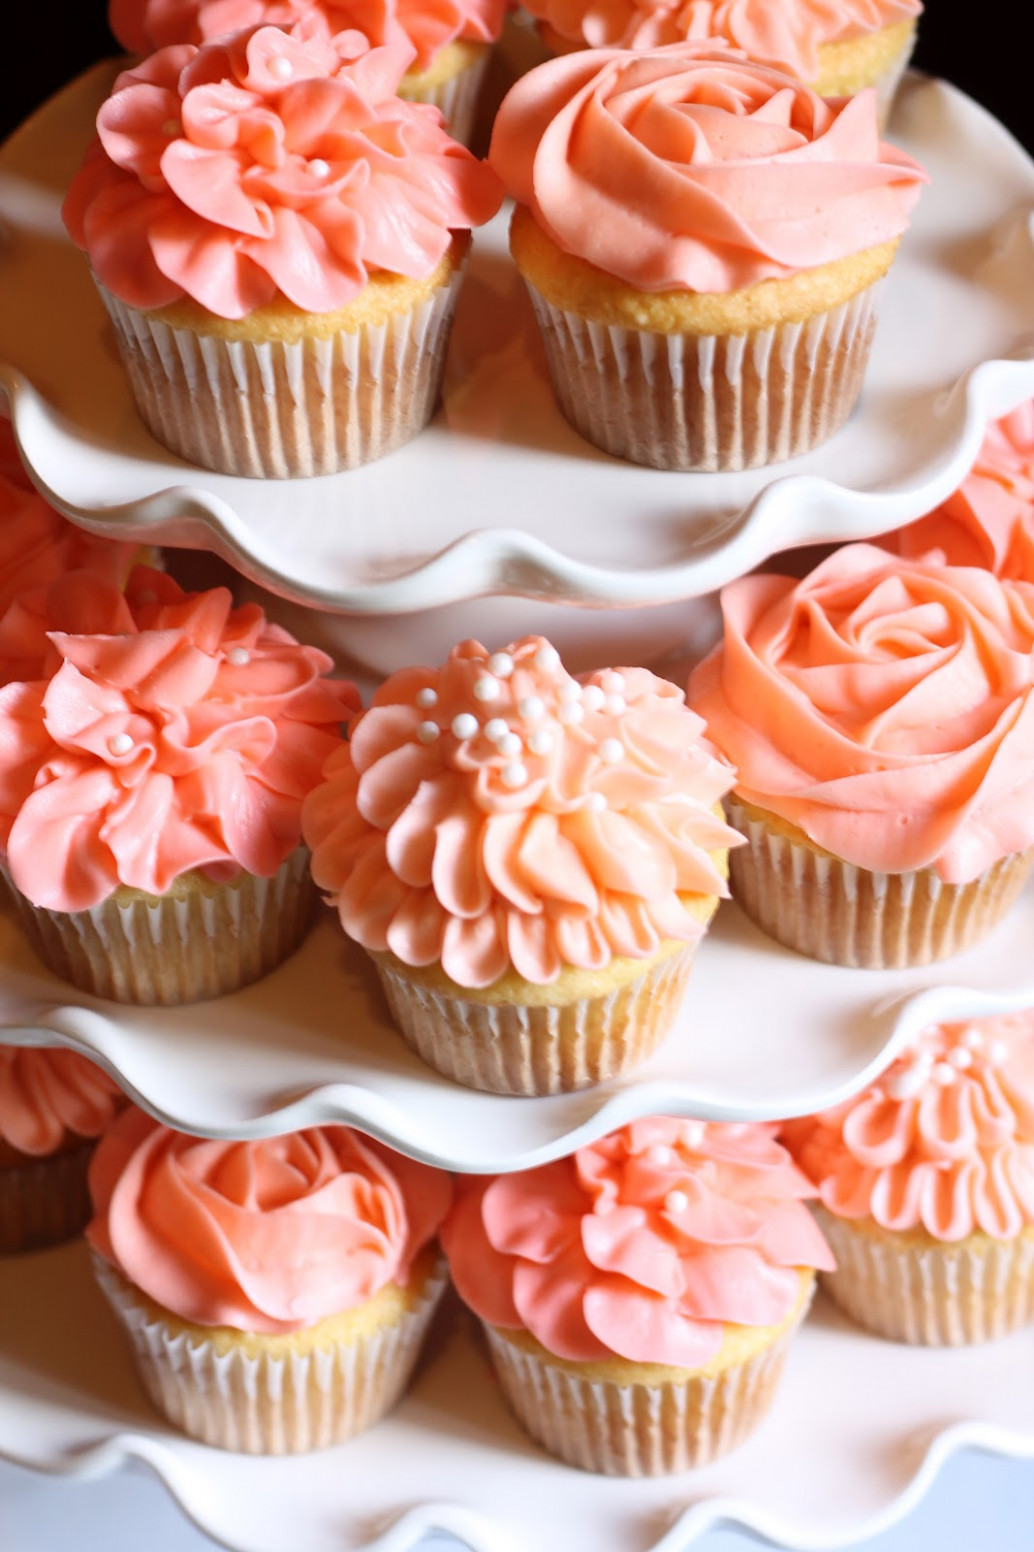 13-coral-color-cake-cupcakes-photo-coral-cupcake-wedding-cake-peach-wedding-cupcakes-and